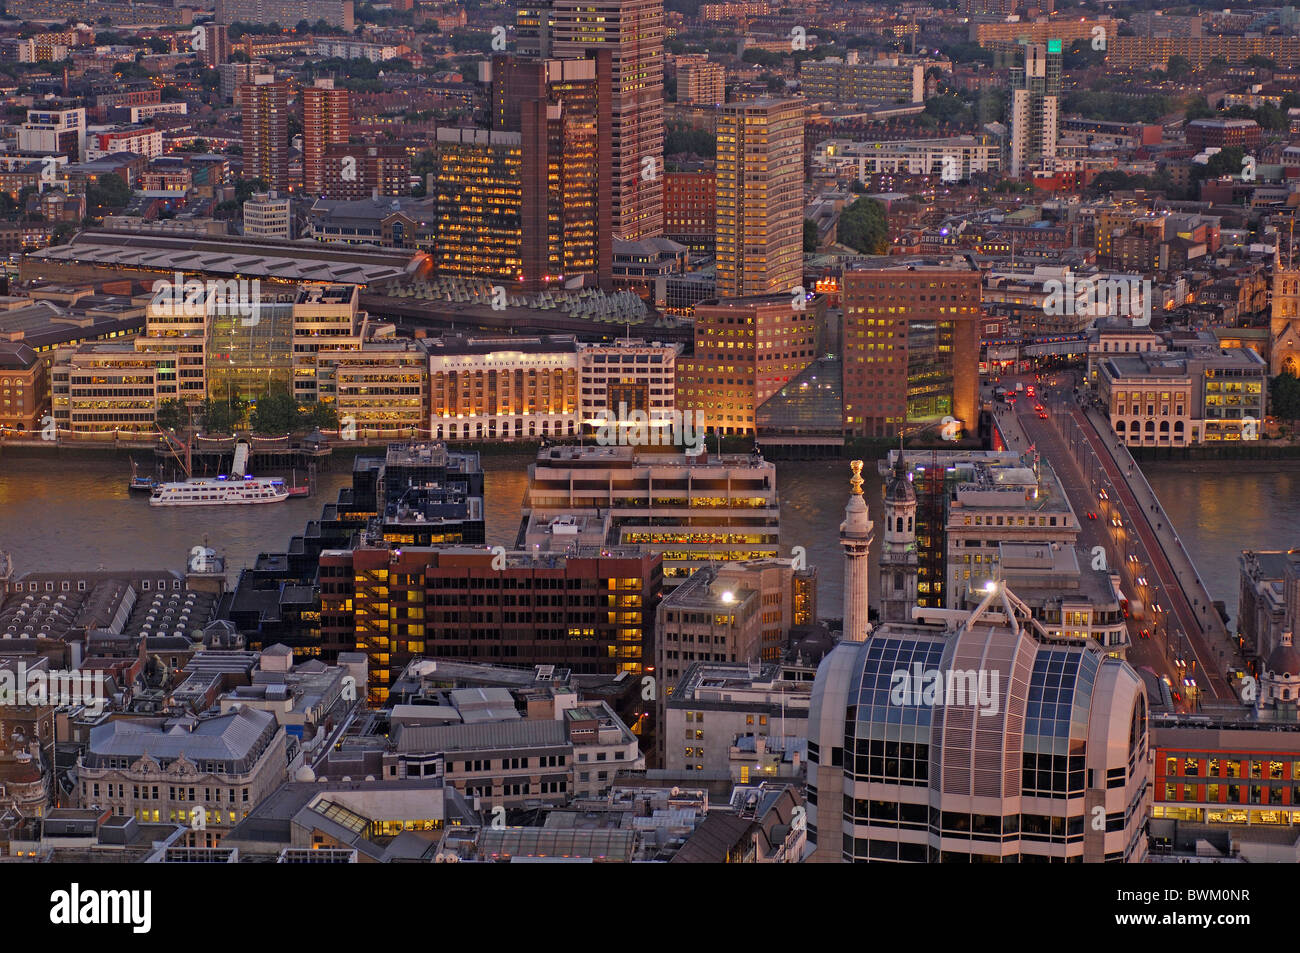 UK London View from Vertigo 42 City Great Britain Europe England town at night dusk evening roofs River T - Stock Image